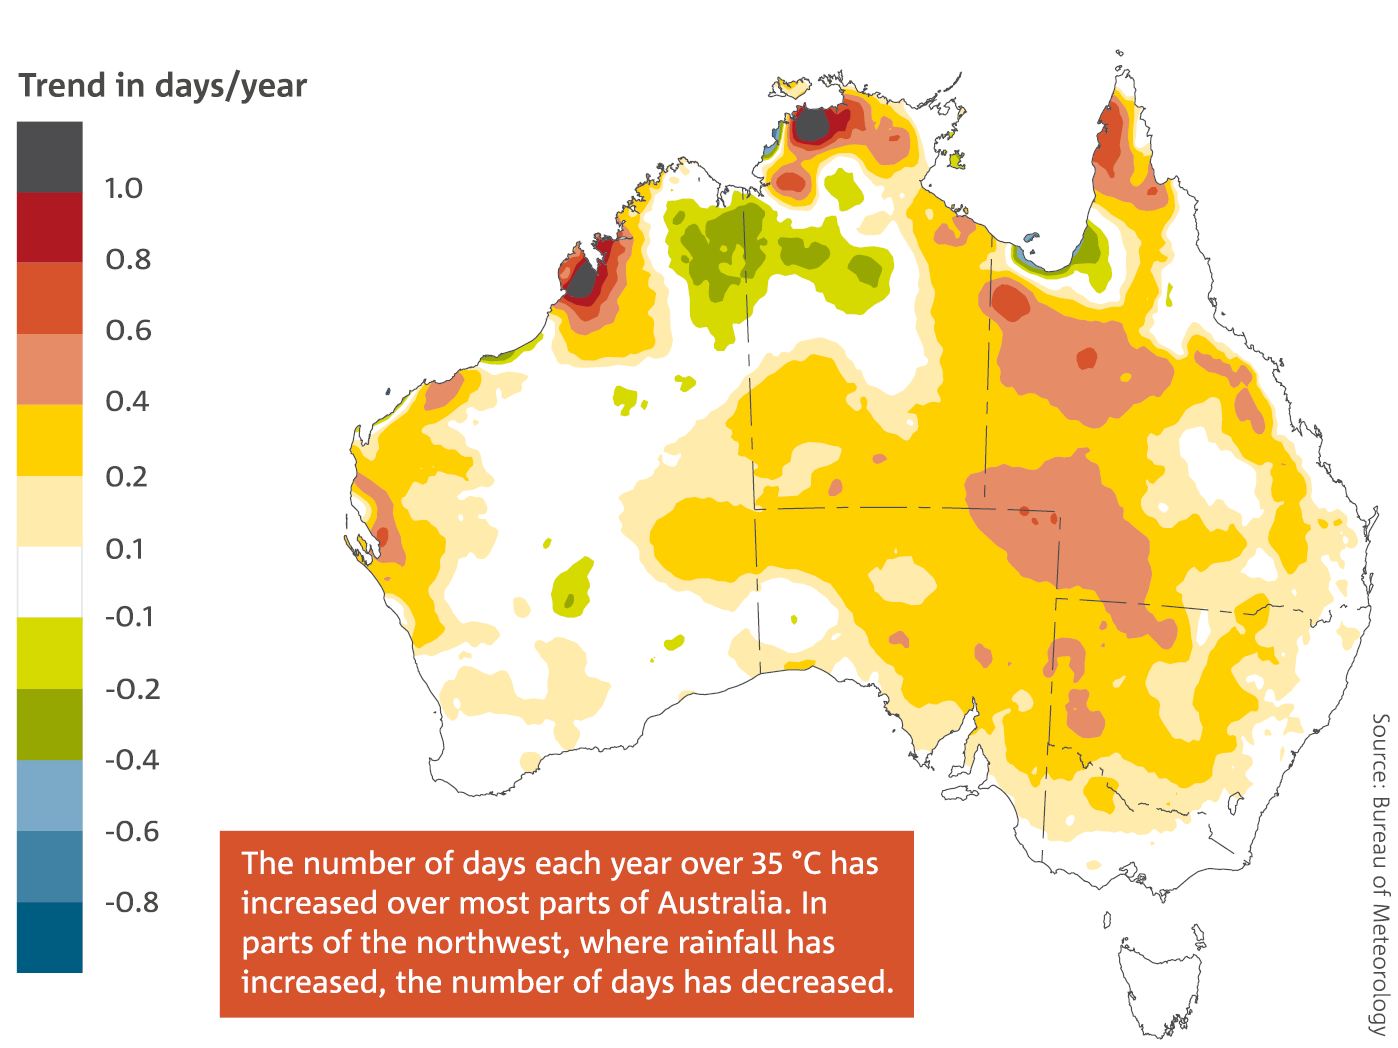 Map: The trend in annual number of days per year above 35 °C from 1957–2015. The number of days each year over 35 °C has increased over most parts of Australia. In parts of the northwest, where rainfall has increased, the number of days has decreased.